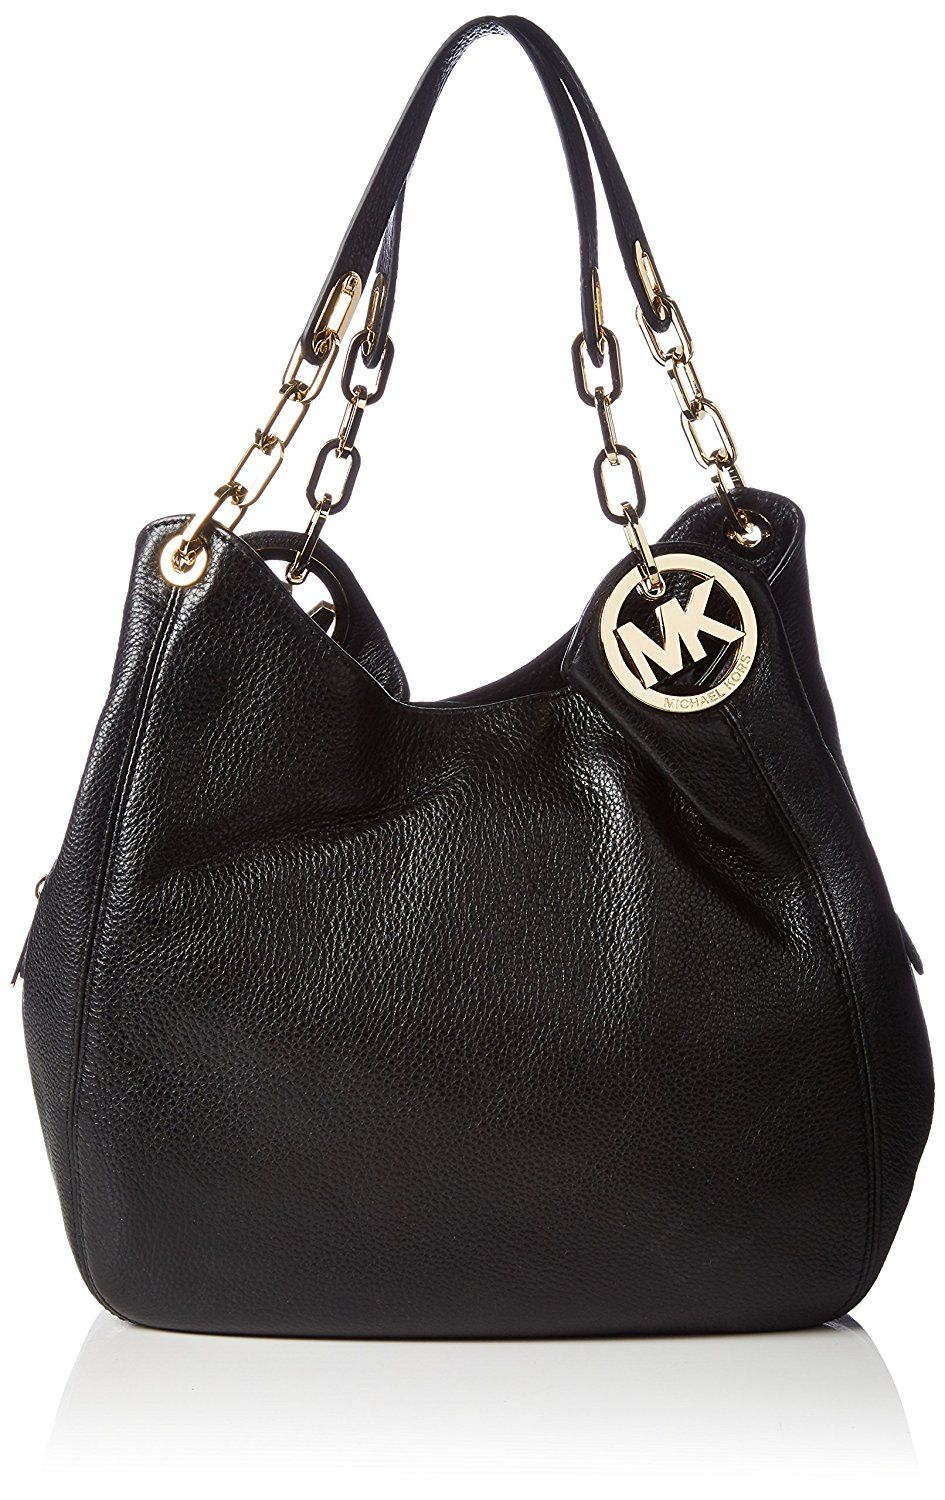 78c1b2d51b7c Michael Kors Fulton Large Leather Shoulder Bag ** Read more reviews of the  product by visiting the link on the image.